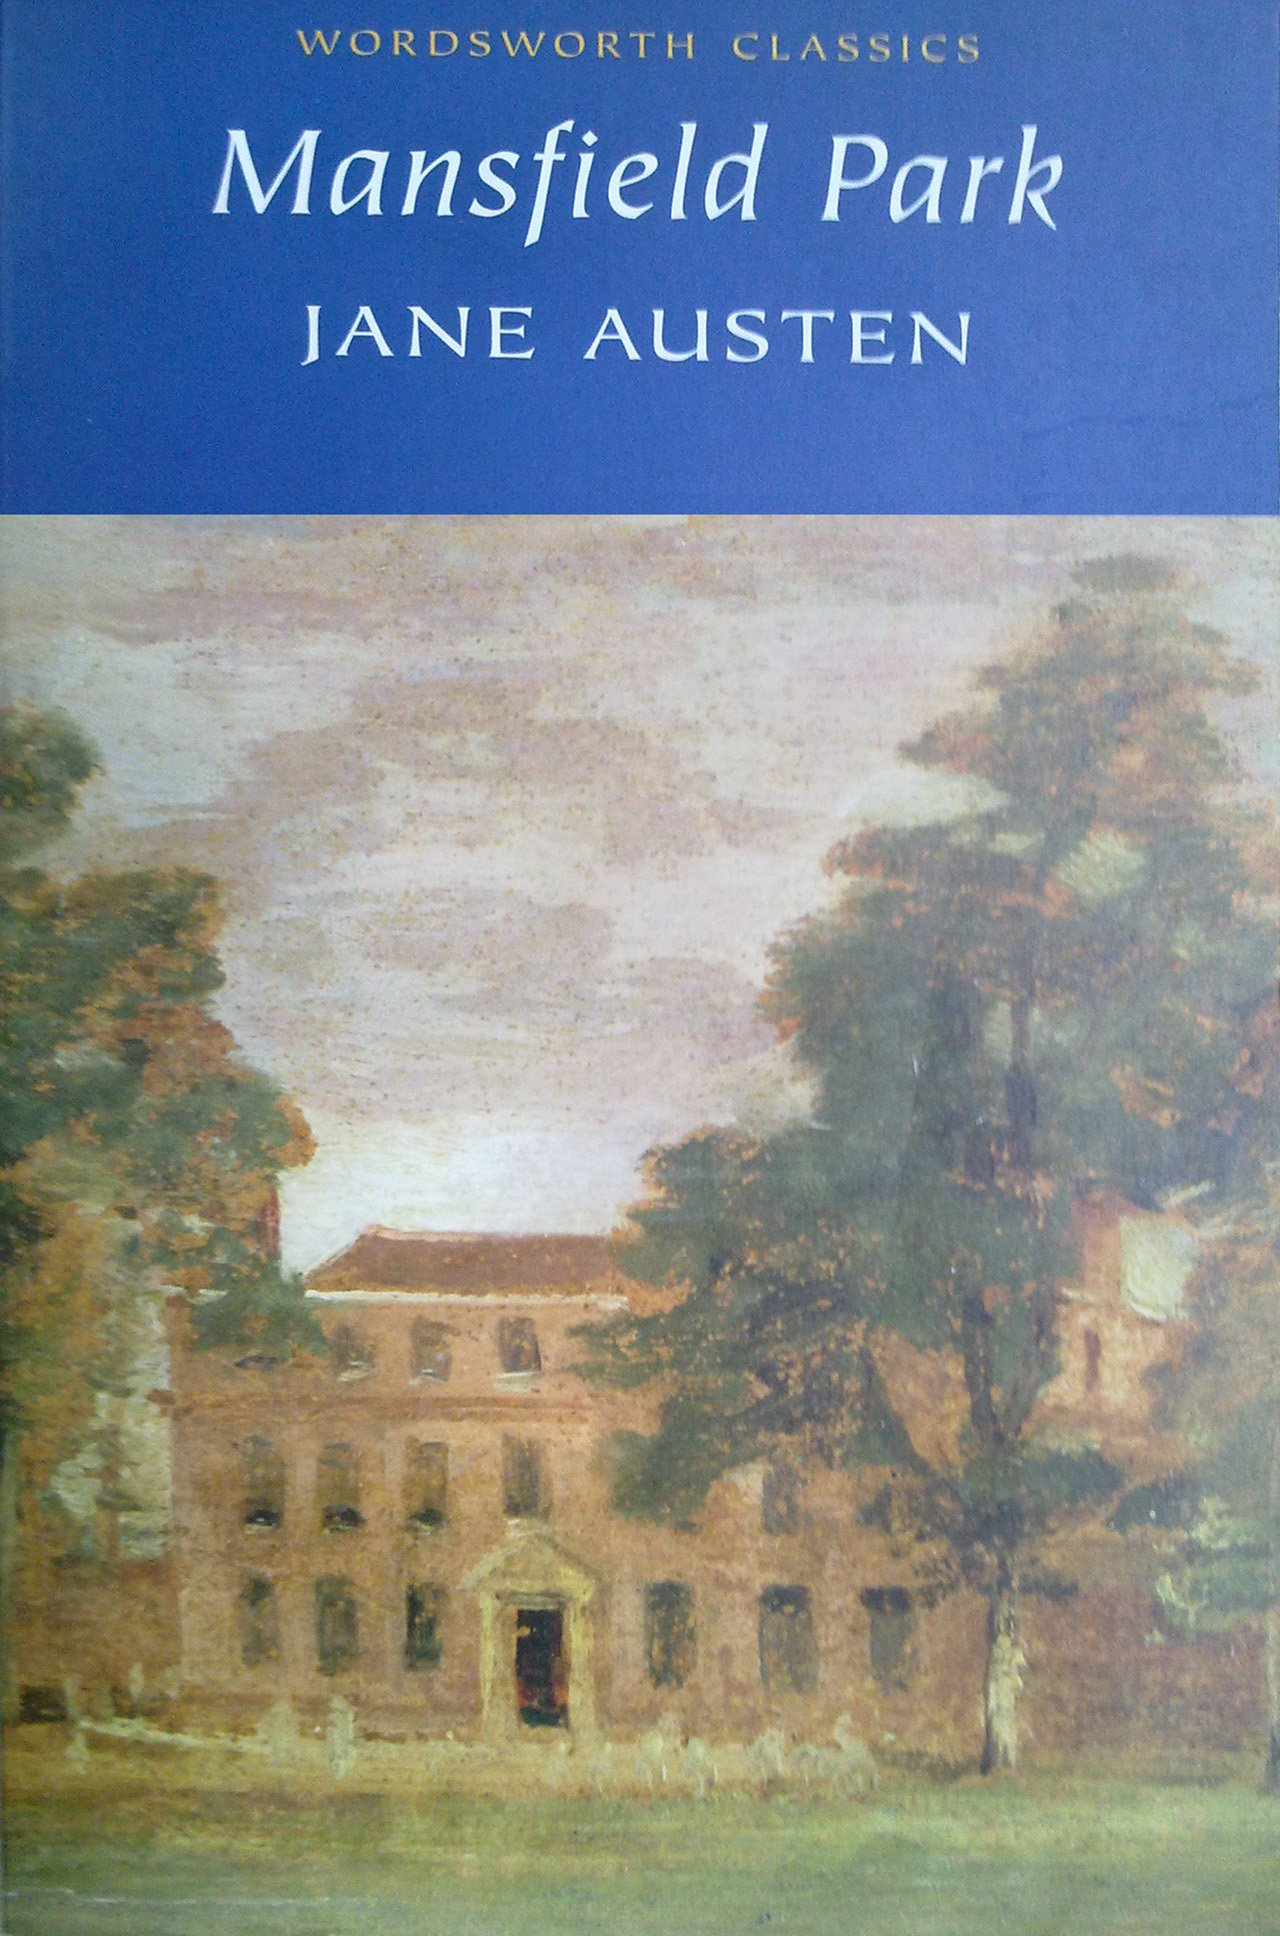 Mansfield Park (Wordsworth Classics): Amazon.co.uk: Austen, Jane,  Littlewood, Dr Ian, Carabine, Dr Keith: 0001853260320: Books